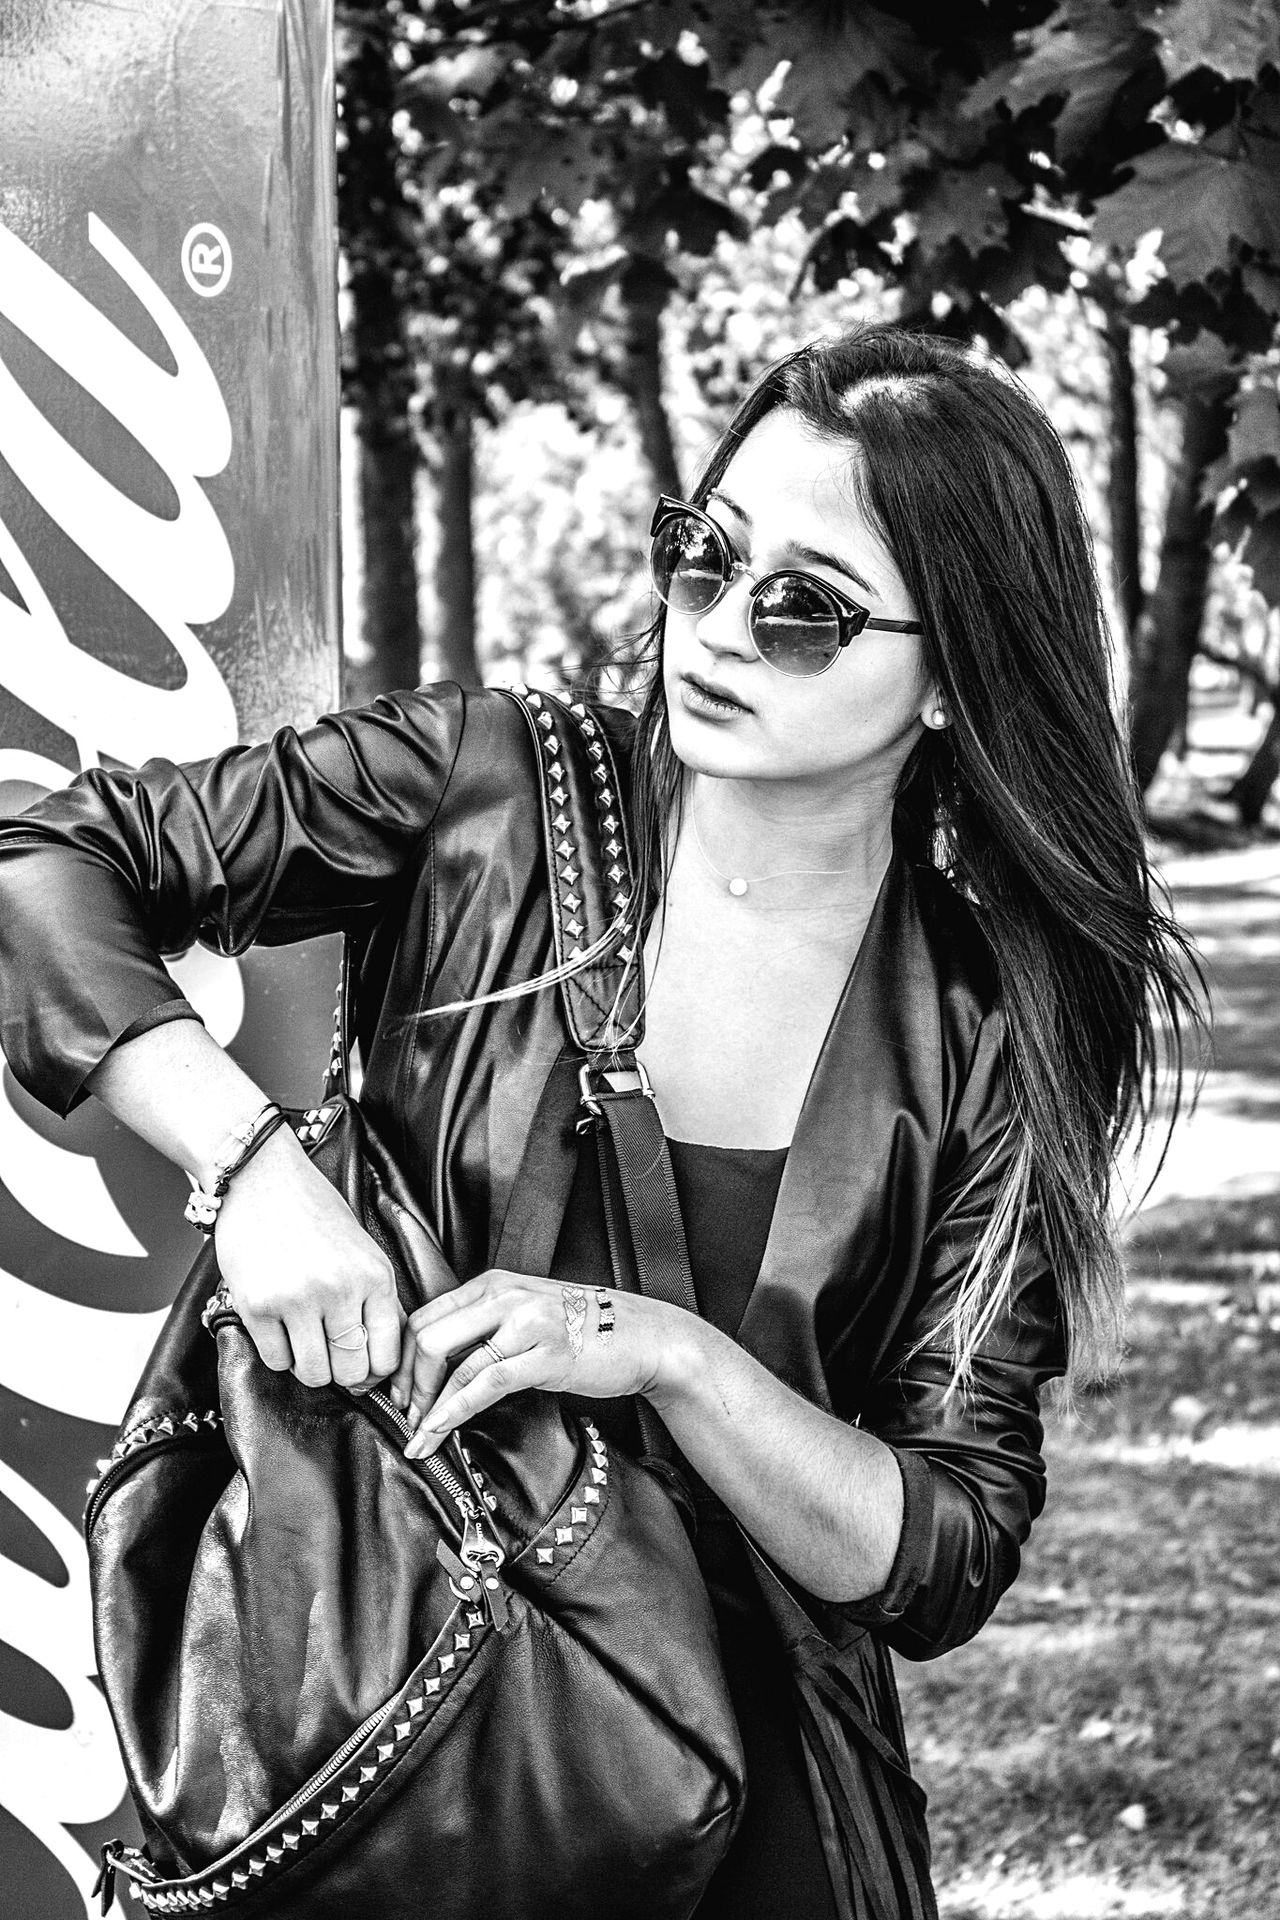 Monochrome Photography Vertical Black And White Outdoors Young Adult Tree One Person Front View Arts Culture And Entertainment Person Young Women People Portrait Day Adult One Woman Only Only Women Real People фото любовь Жизнь Like Gerl Photo Gerls